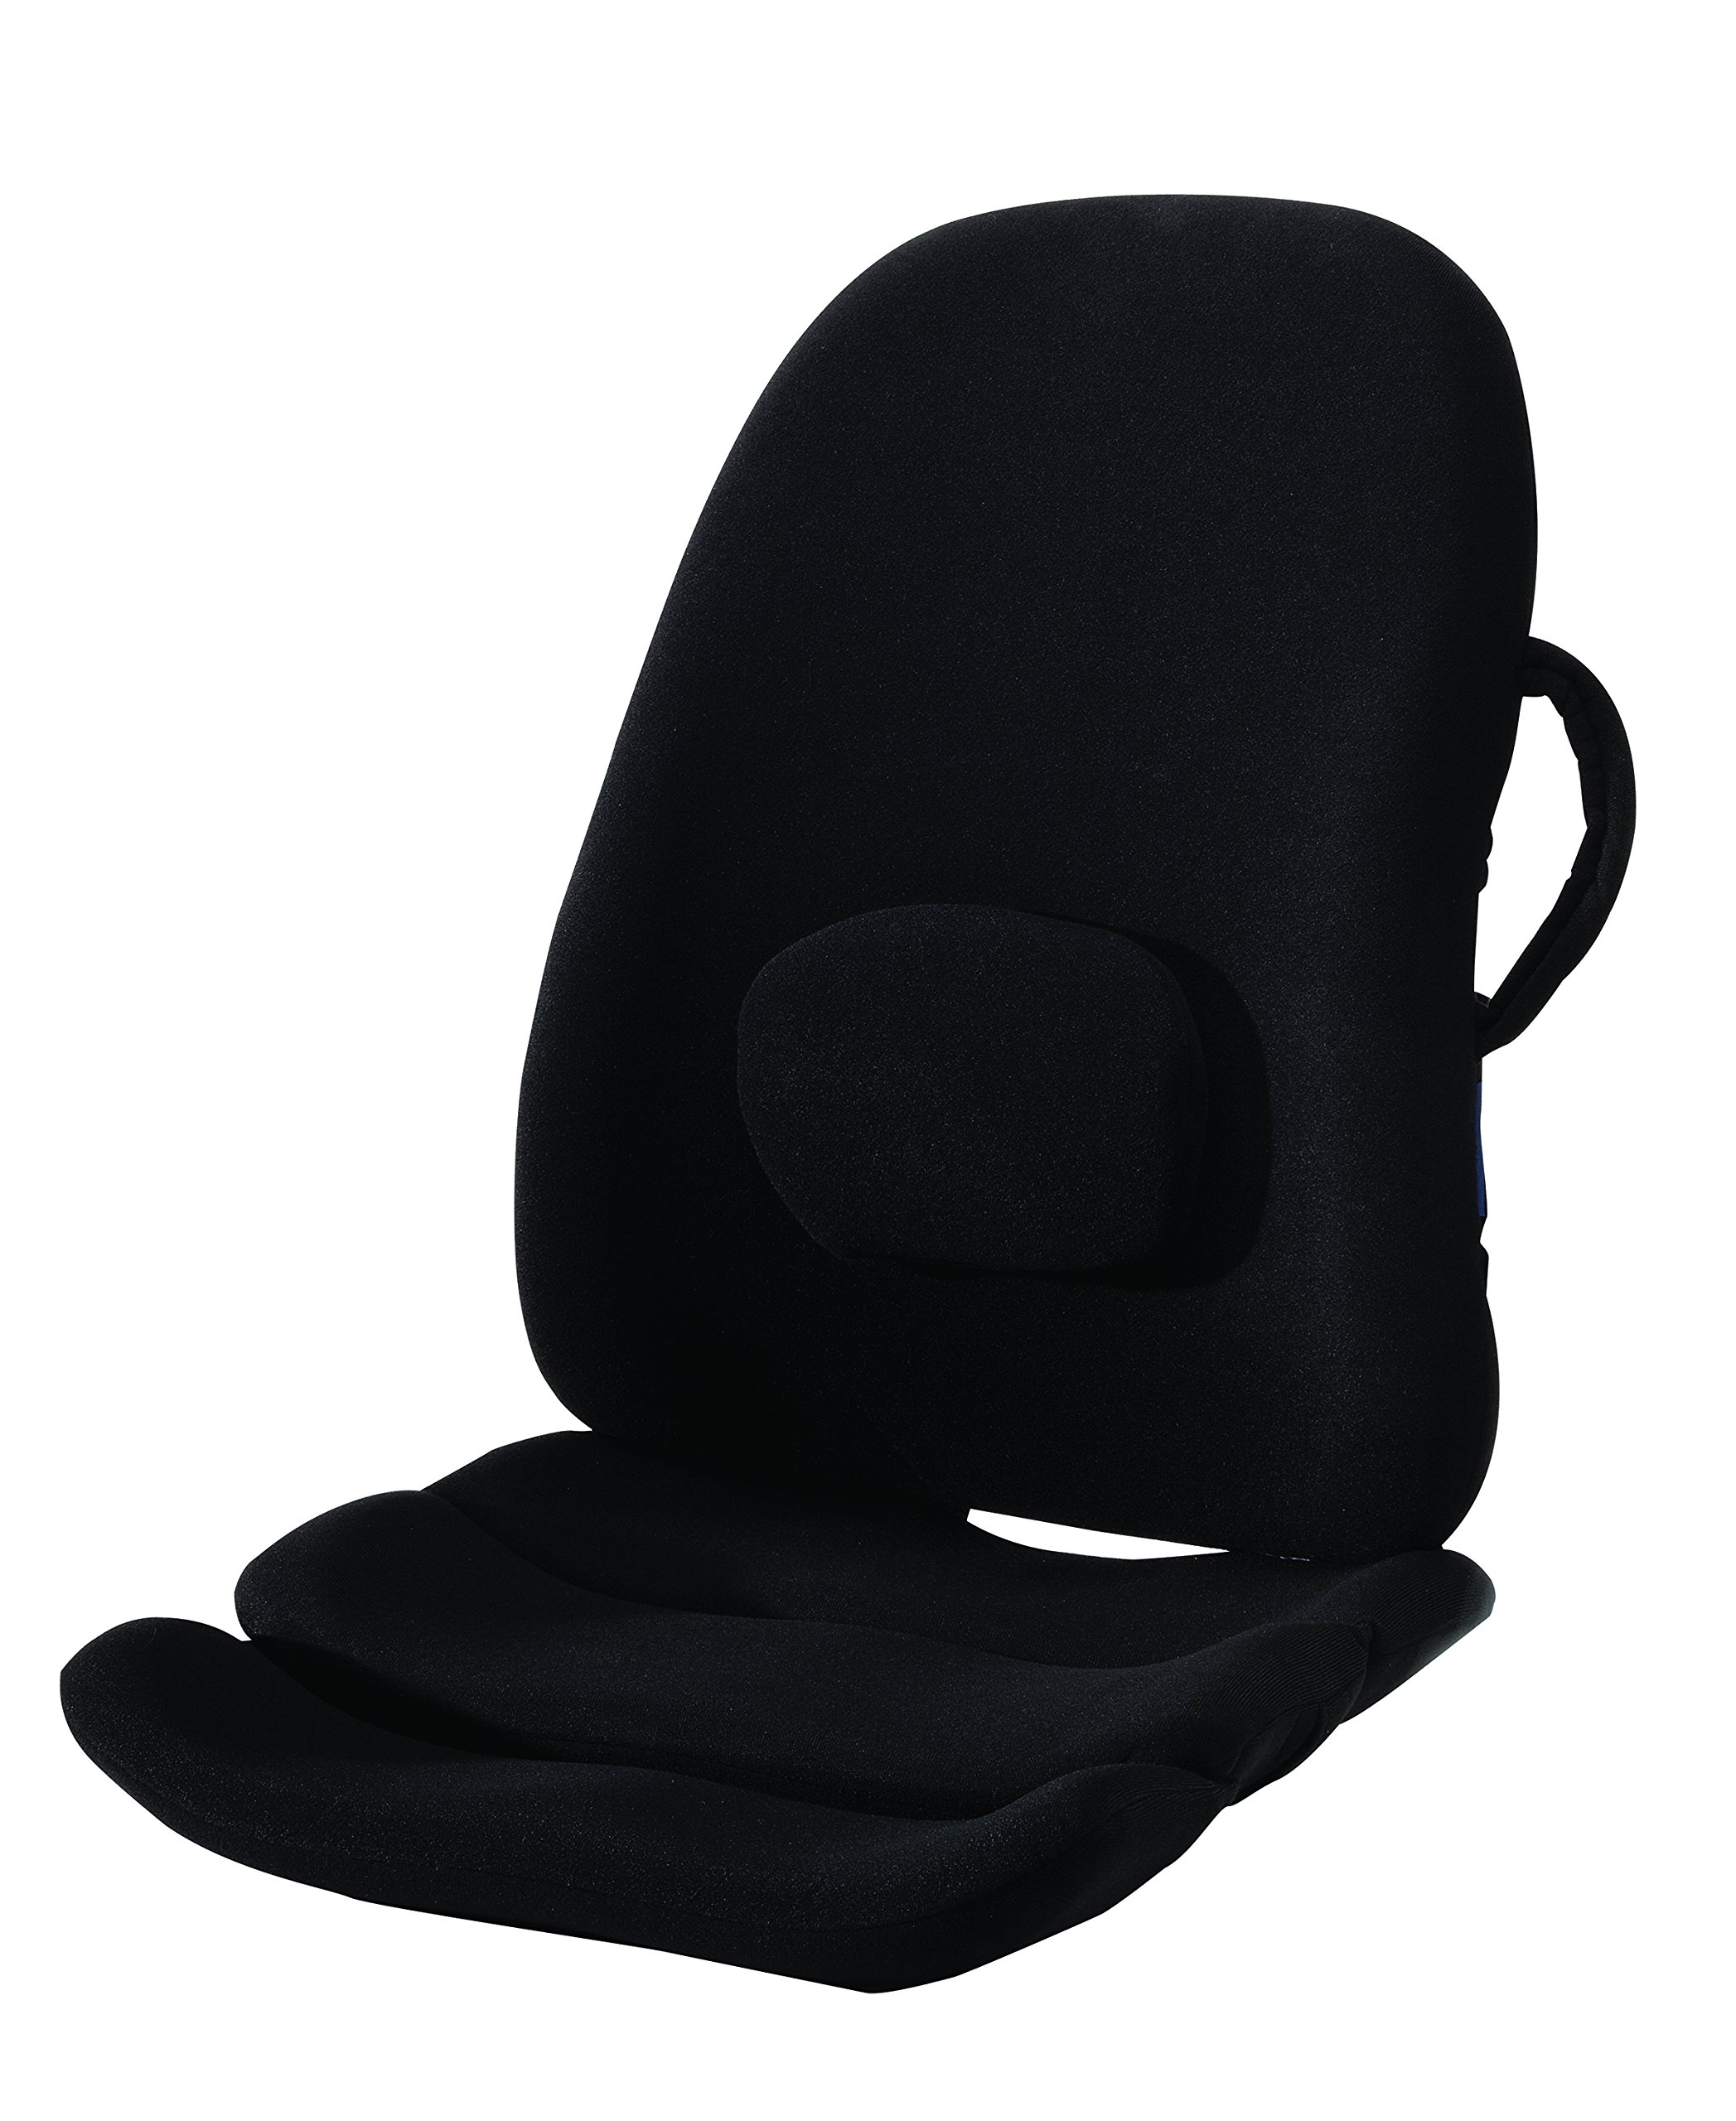 ObusForme Lowback Backrest Support System - Adjustable Lumbar Support, Contoured Cushioning Support, Handles, Hypoallergenic Cover. Portable Lumbar Support Cushion